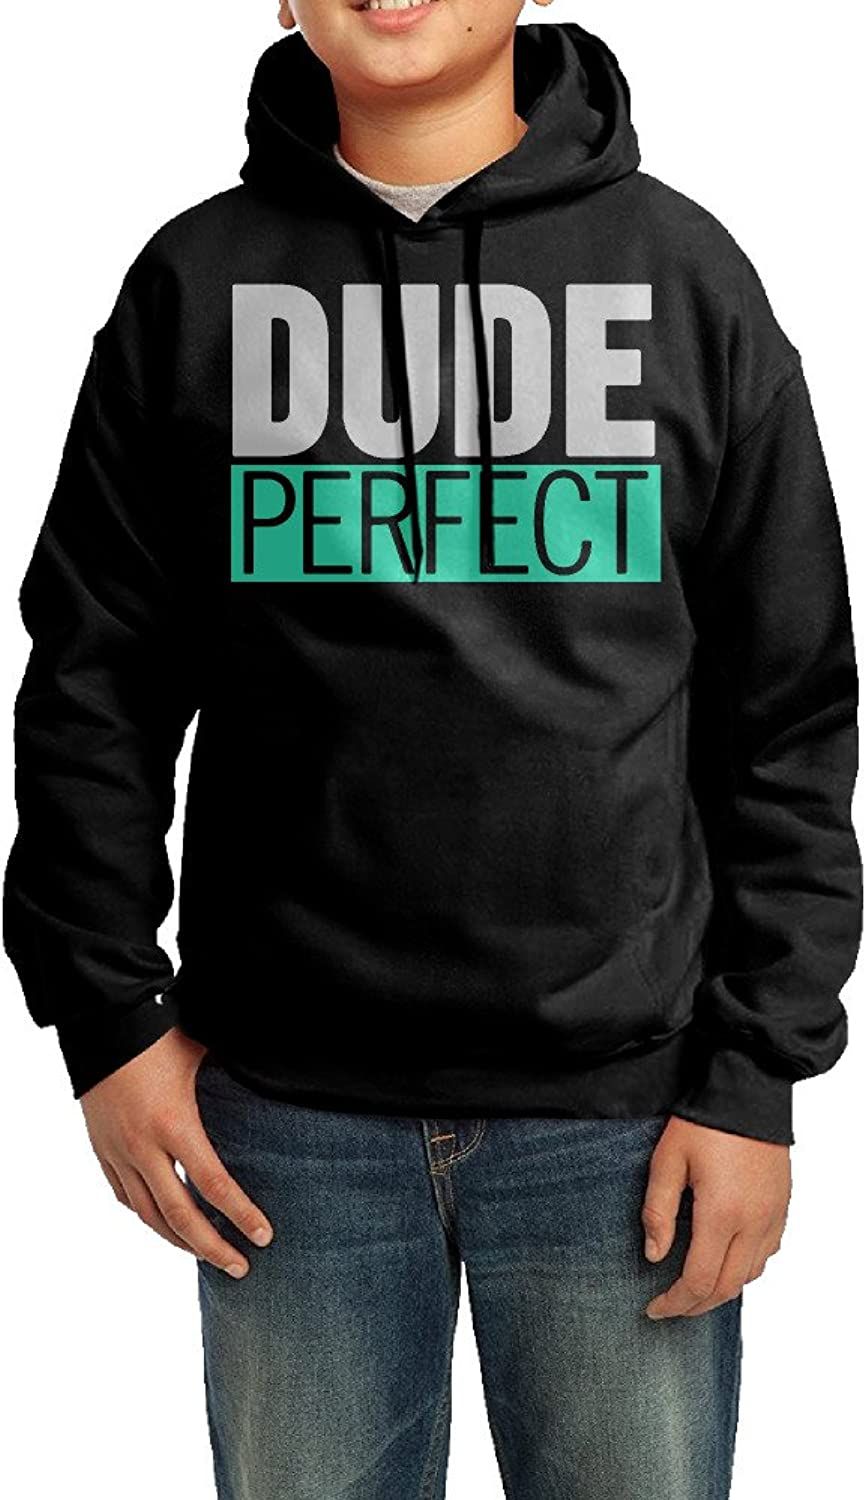 YHTY Youth Unisex Hoodies Dude Action Figure Perfect Black